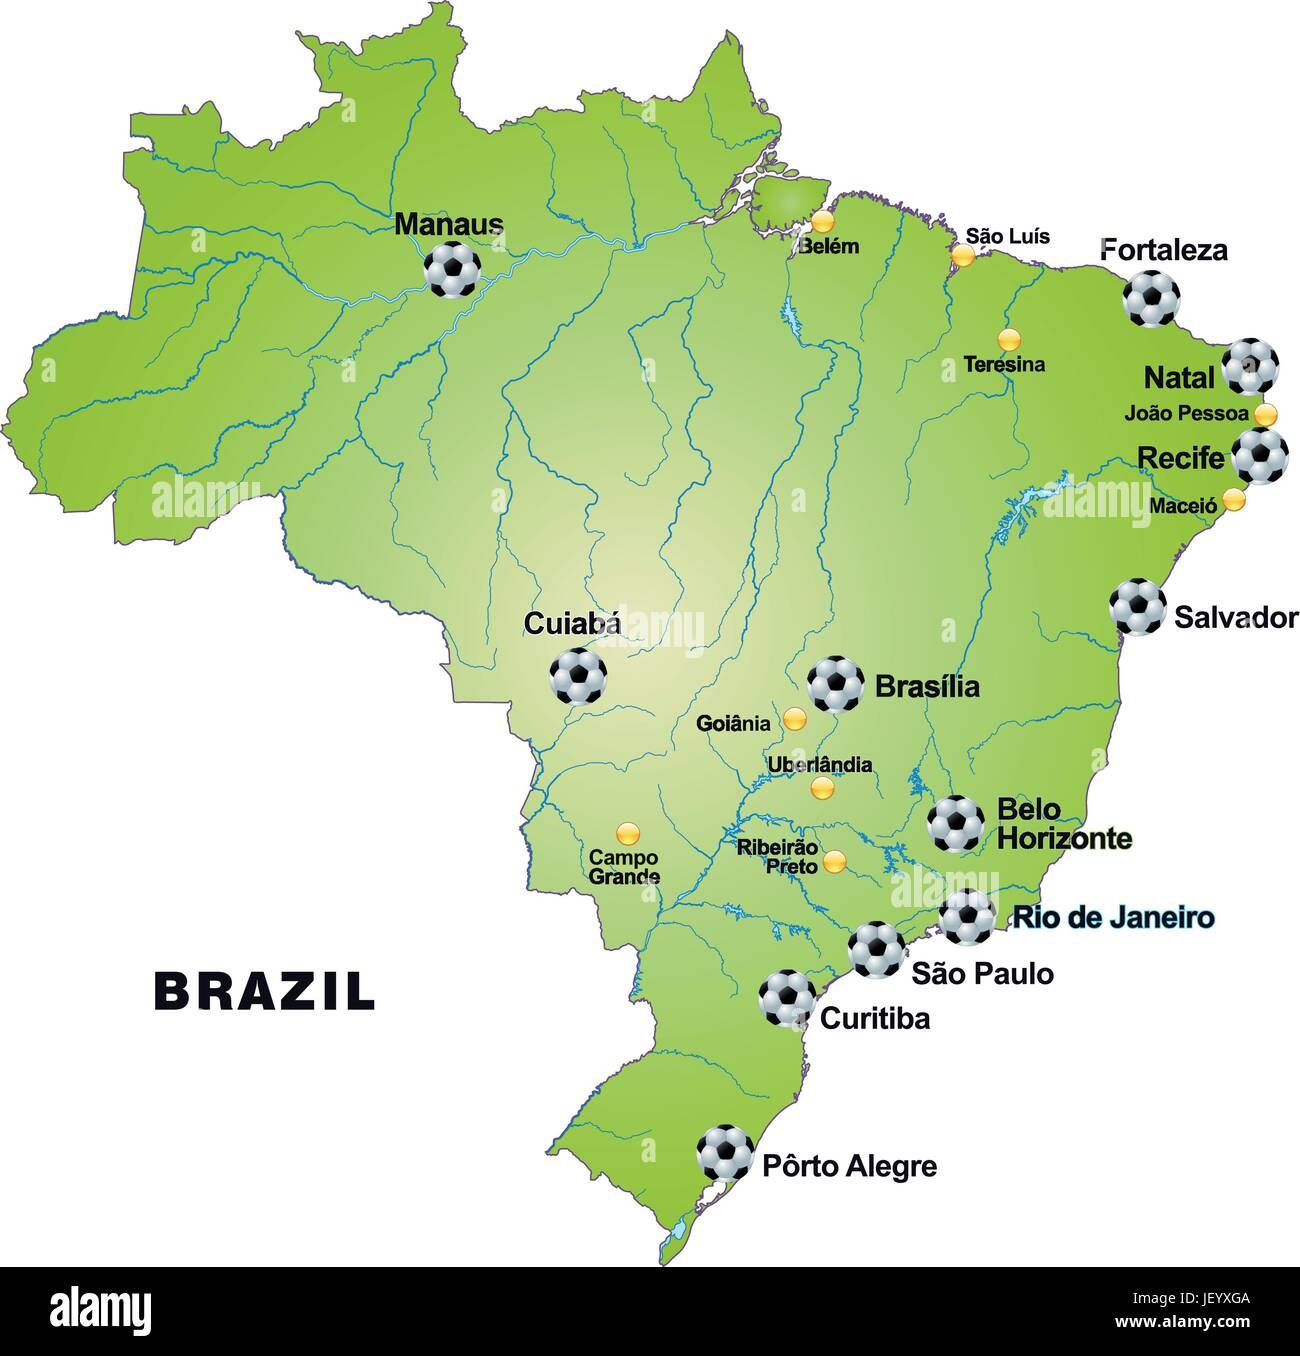 Card, Atlas, Map Of The World, Map, Brazil, Card, Outline, Borders, Atlas,  Map